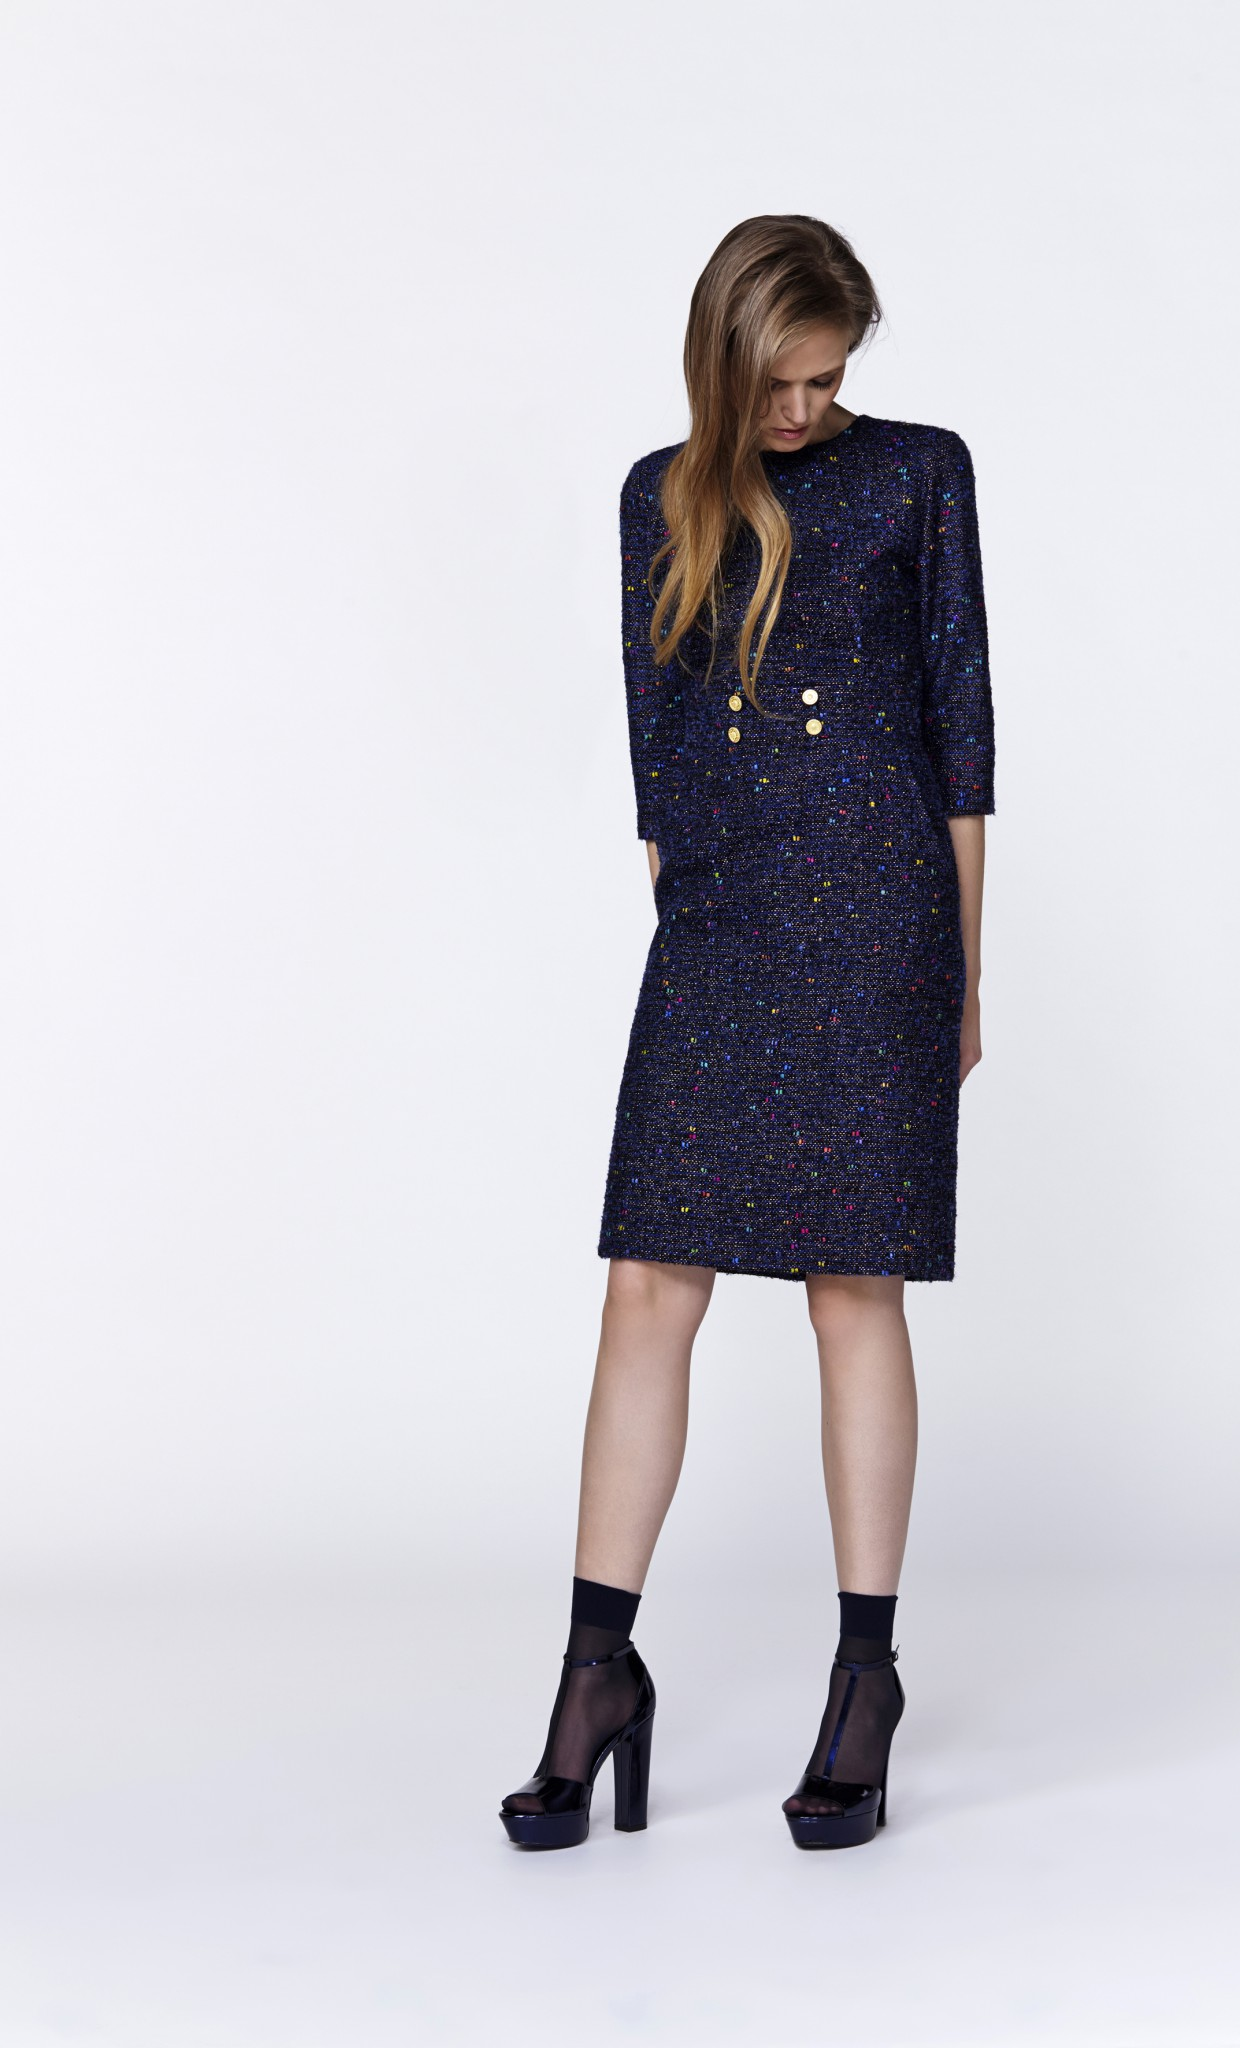 MUTLICOLORED DOTS TWEED DRESS FINISHED WITH GOLDEN BUTTONS